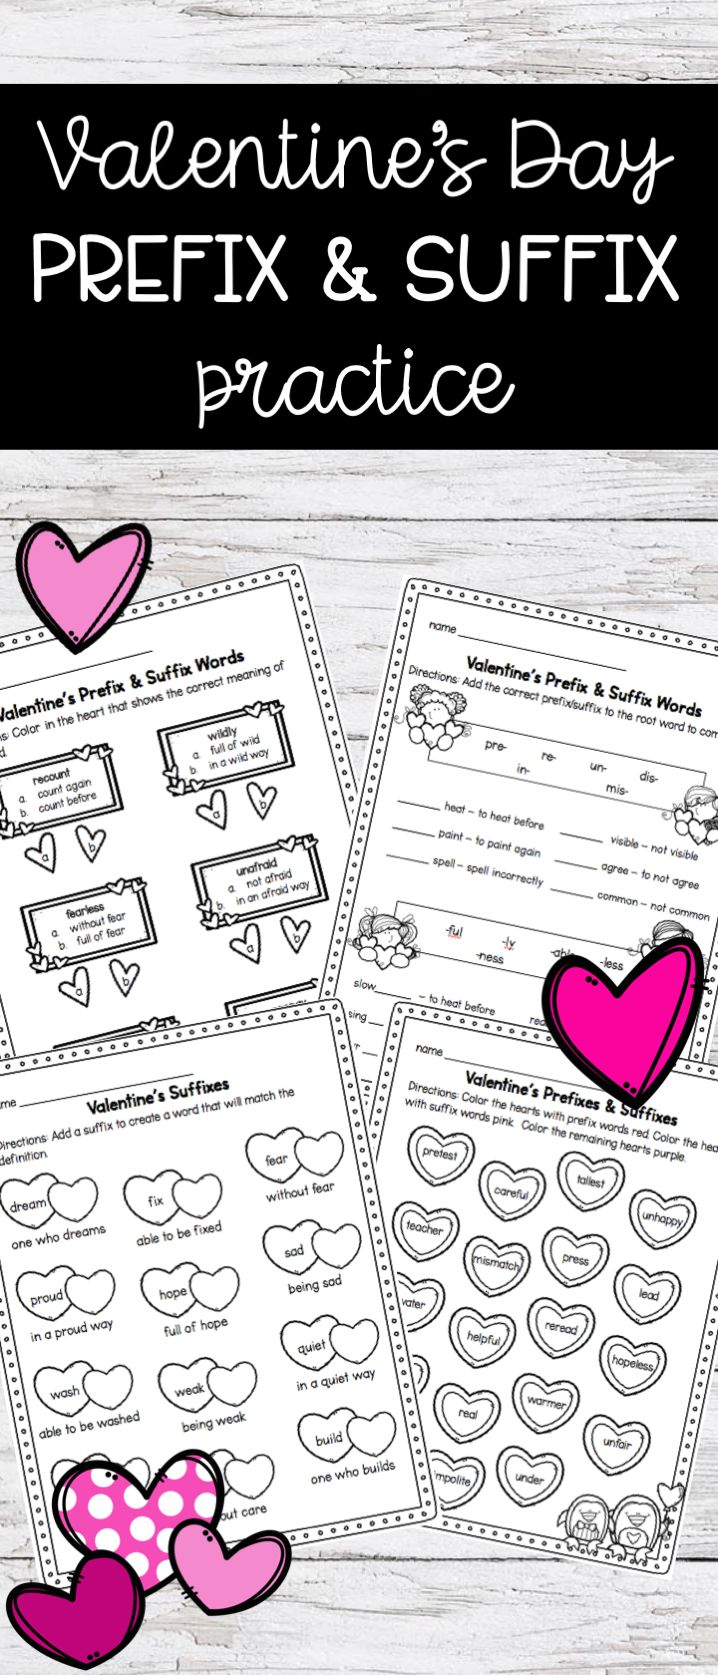 381 best Activities for Valentine's Day images on Pinterest ...